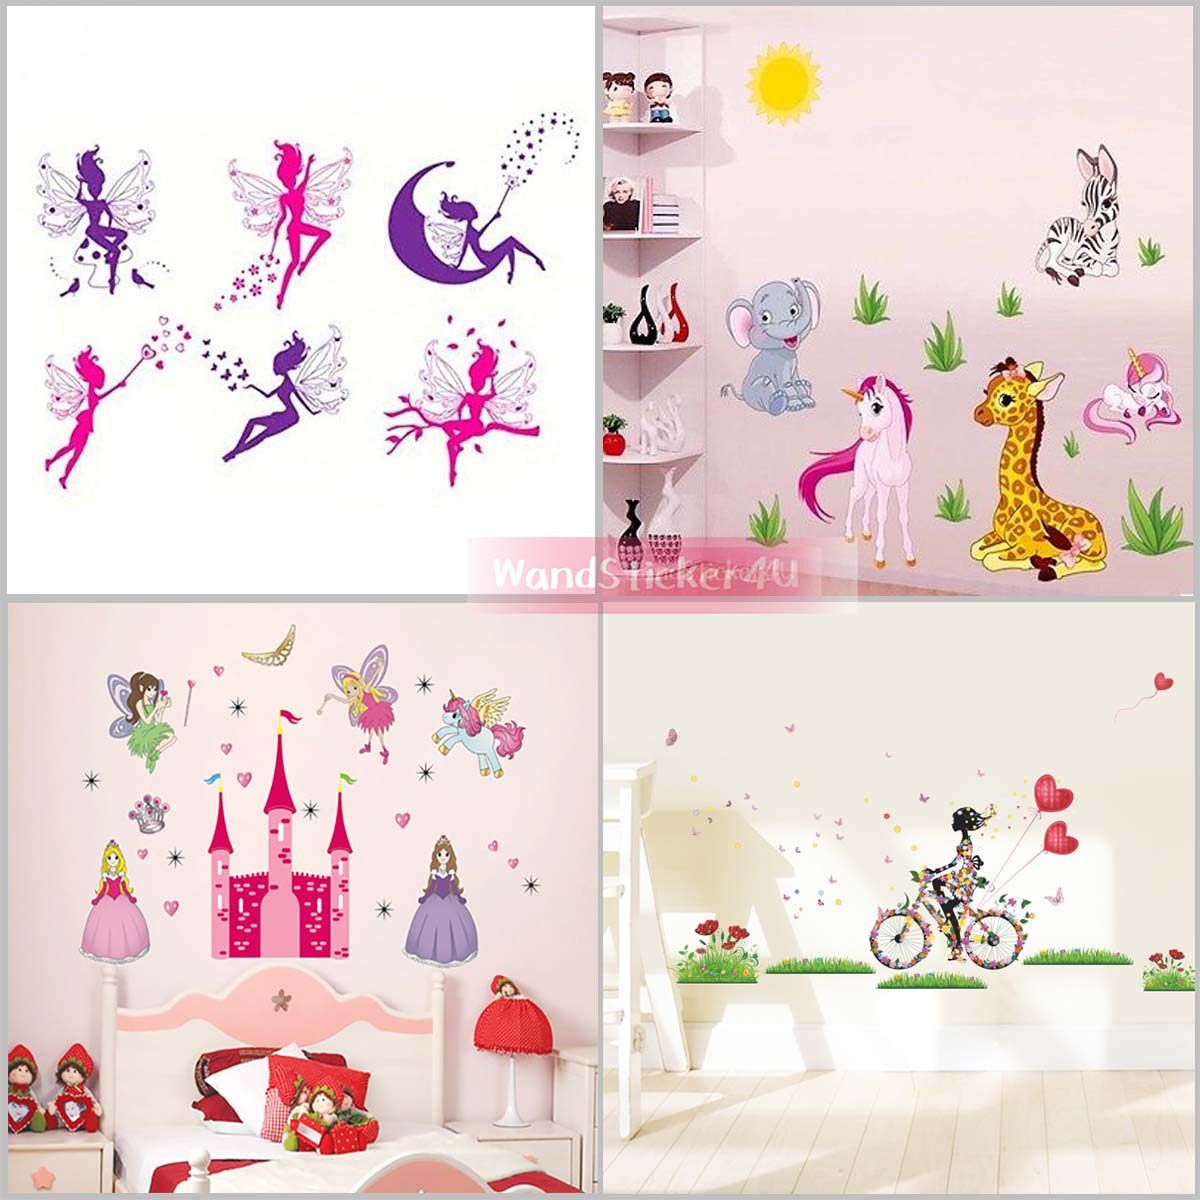 wandtattoo kinderzimmer m dchen prinzessin schloss einhorn pferd elfe fee tiere ebay. Black Bedroom Furniture Sets. Home Design Ideas